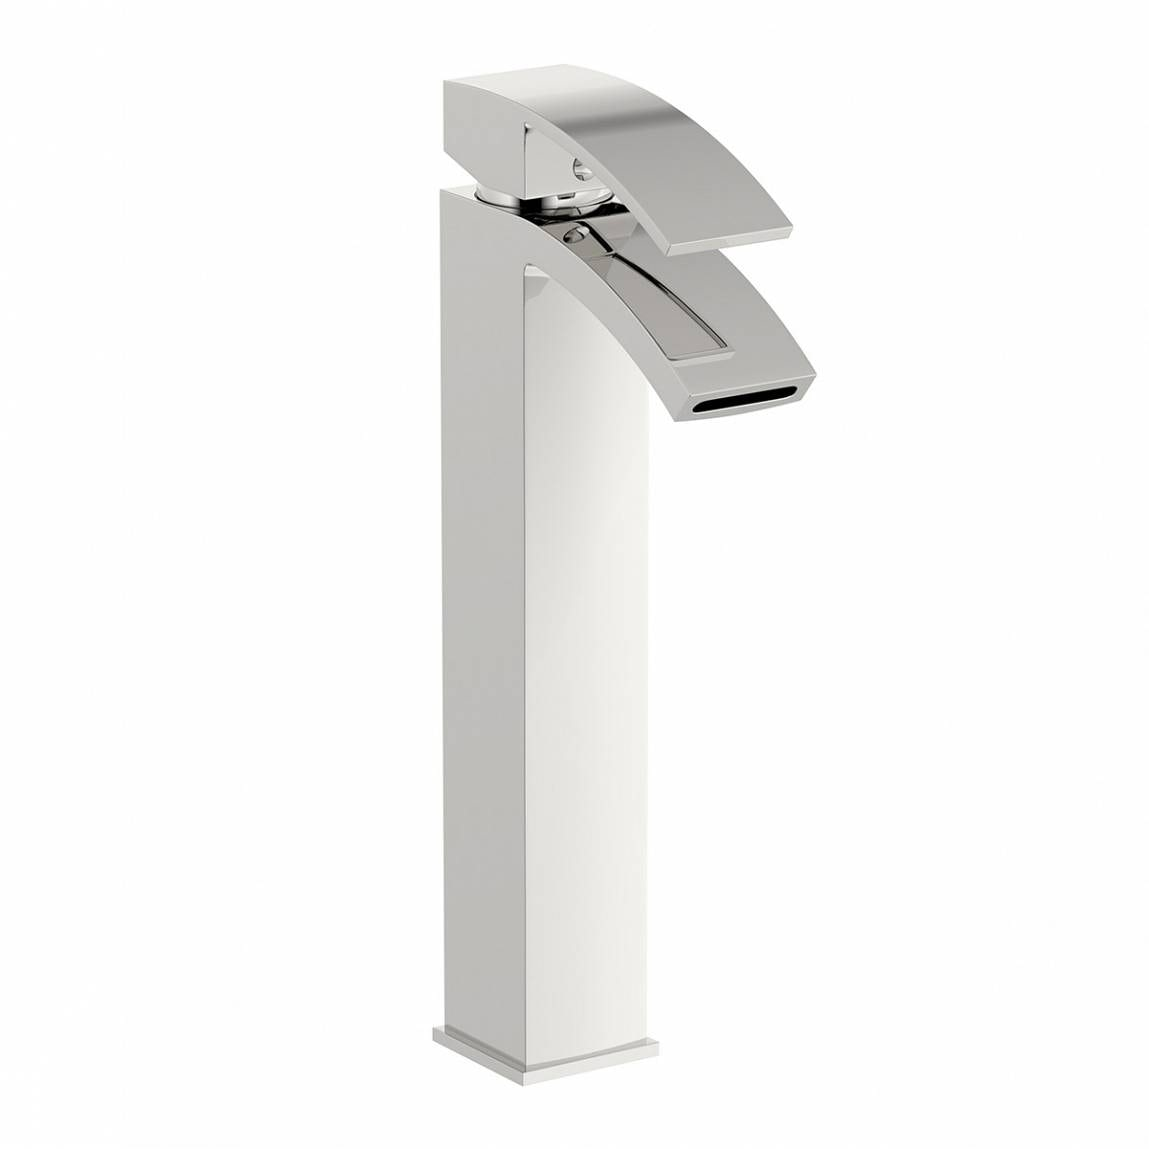 Orchard Wye high rise counter top basin mixer tap